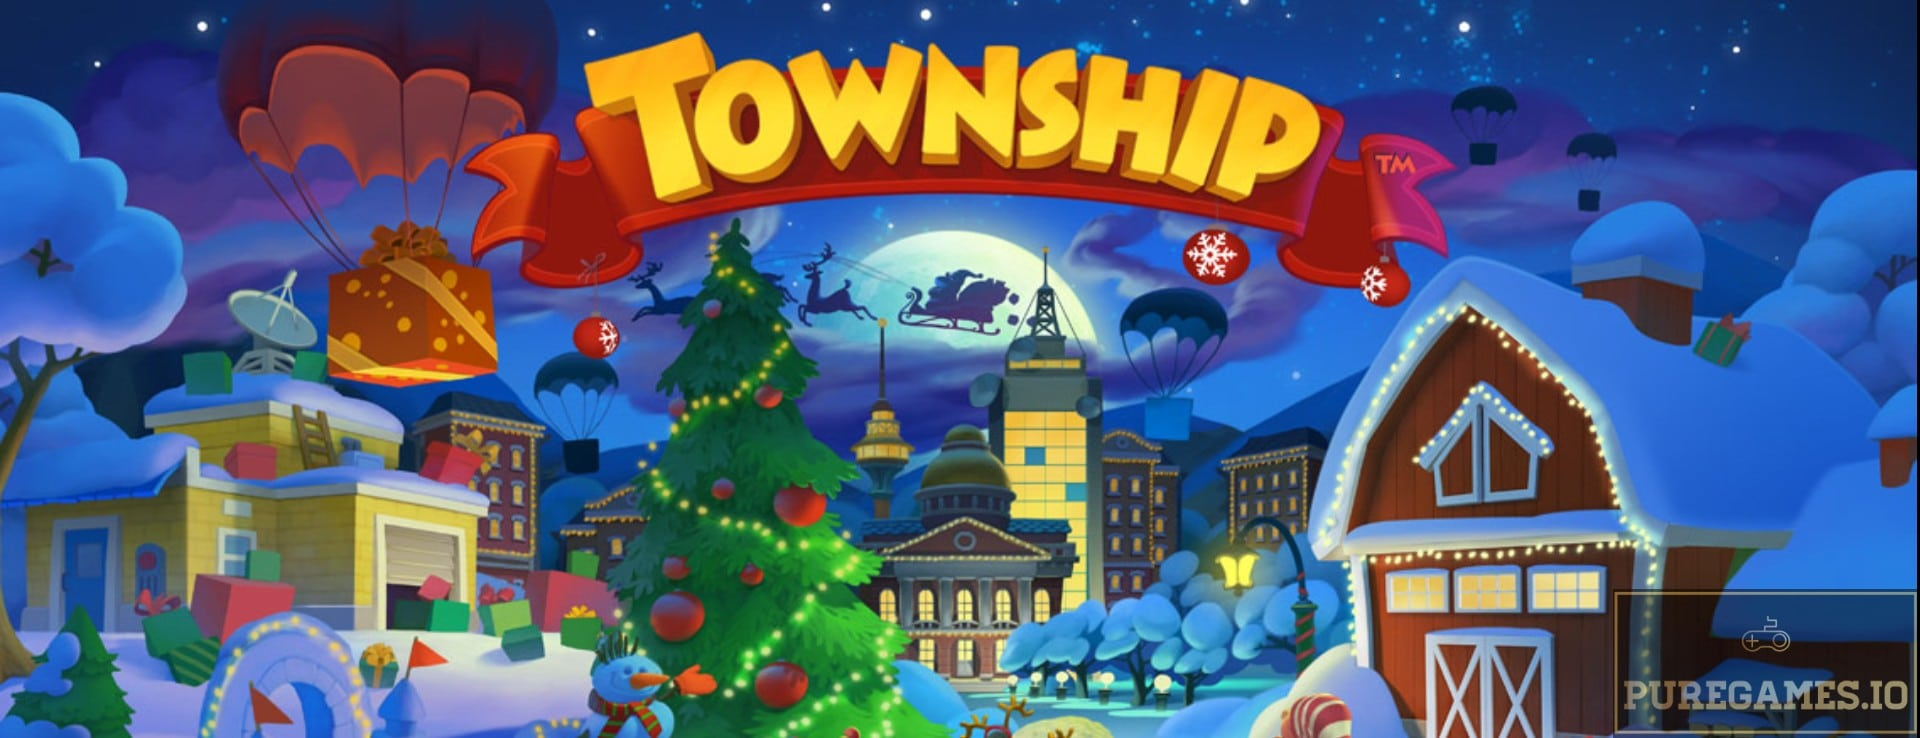 Download Township APK for Android/iOS 6